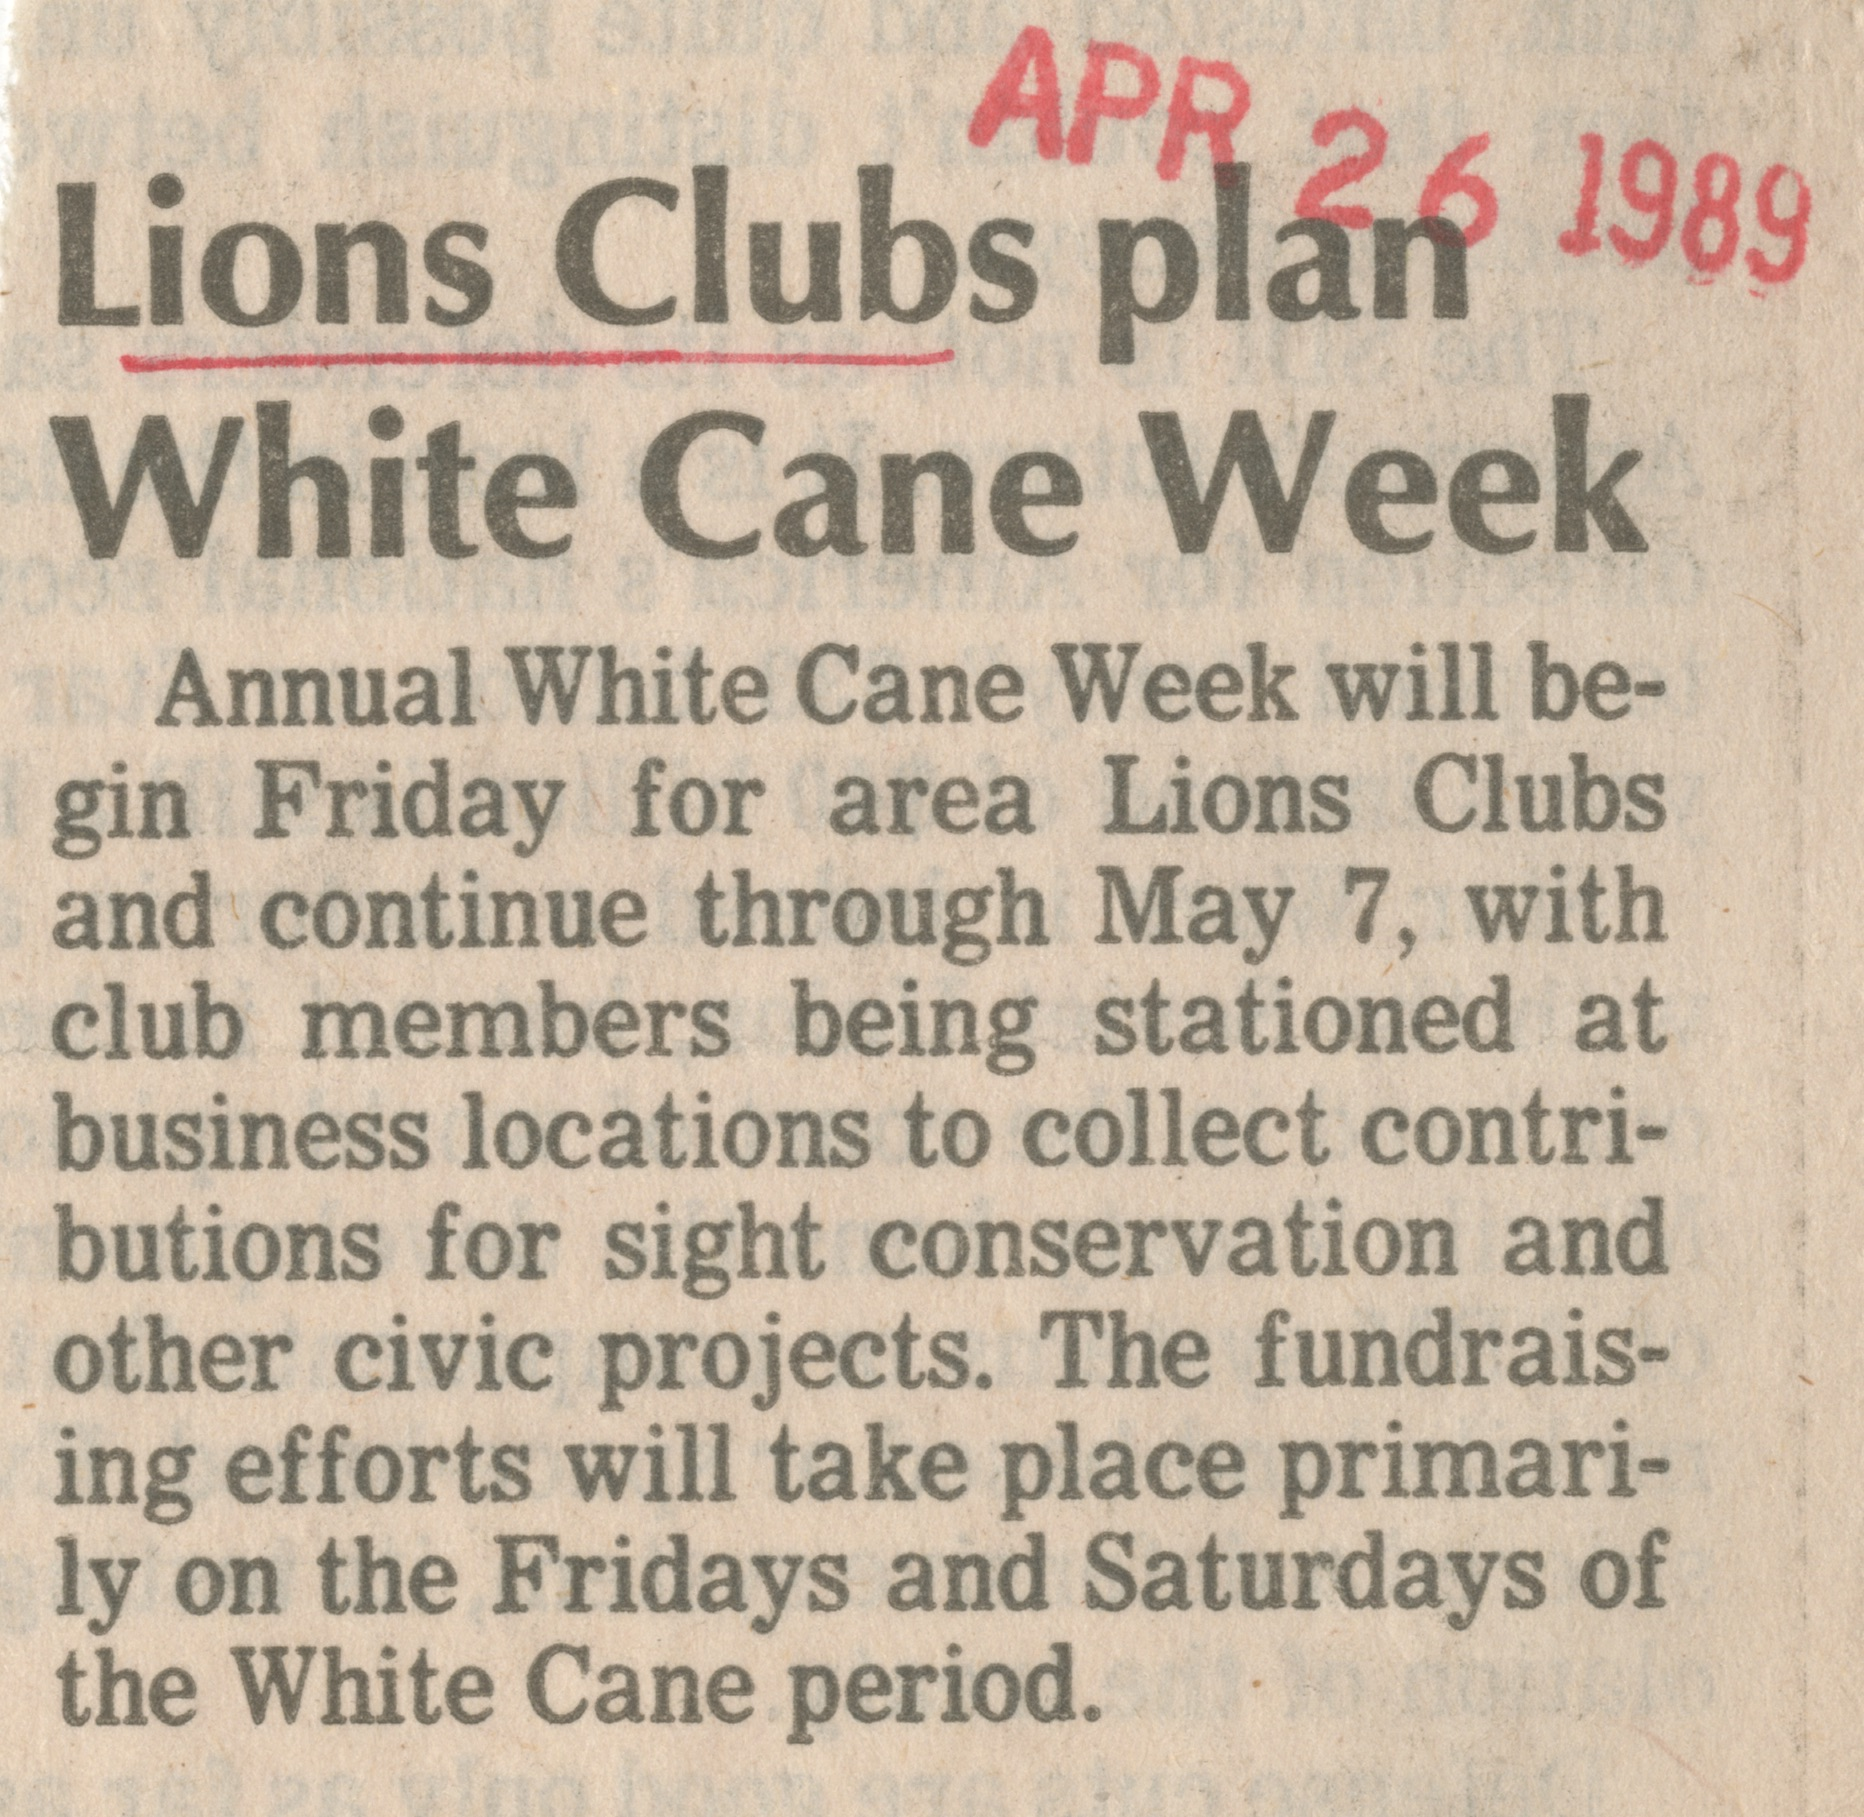 Lions Clubs plan White Cane week image